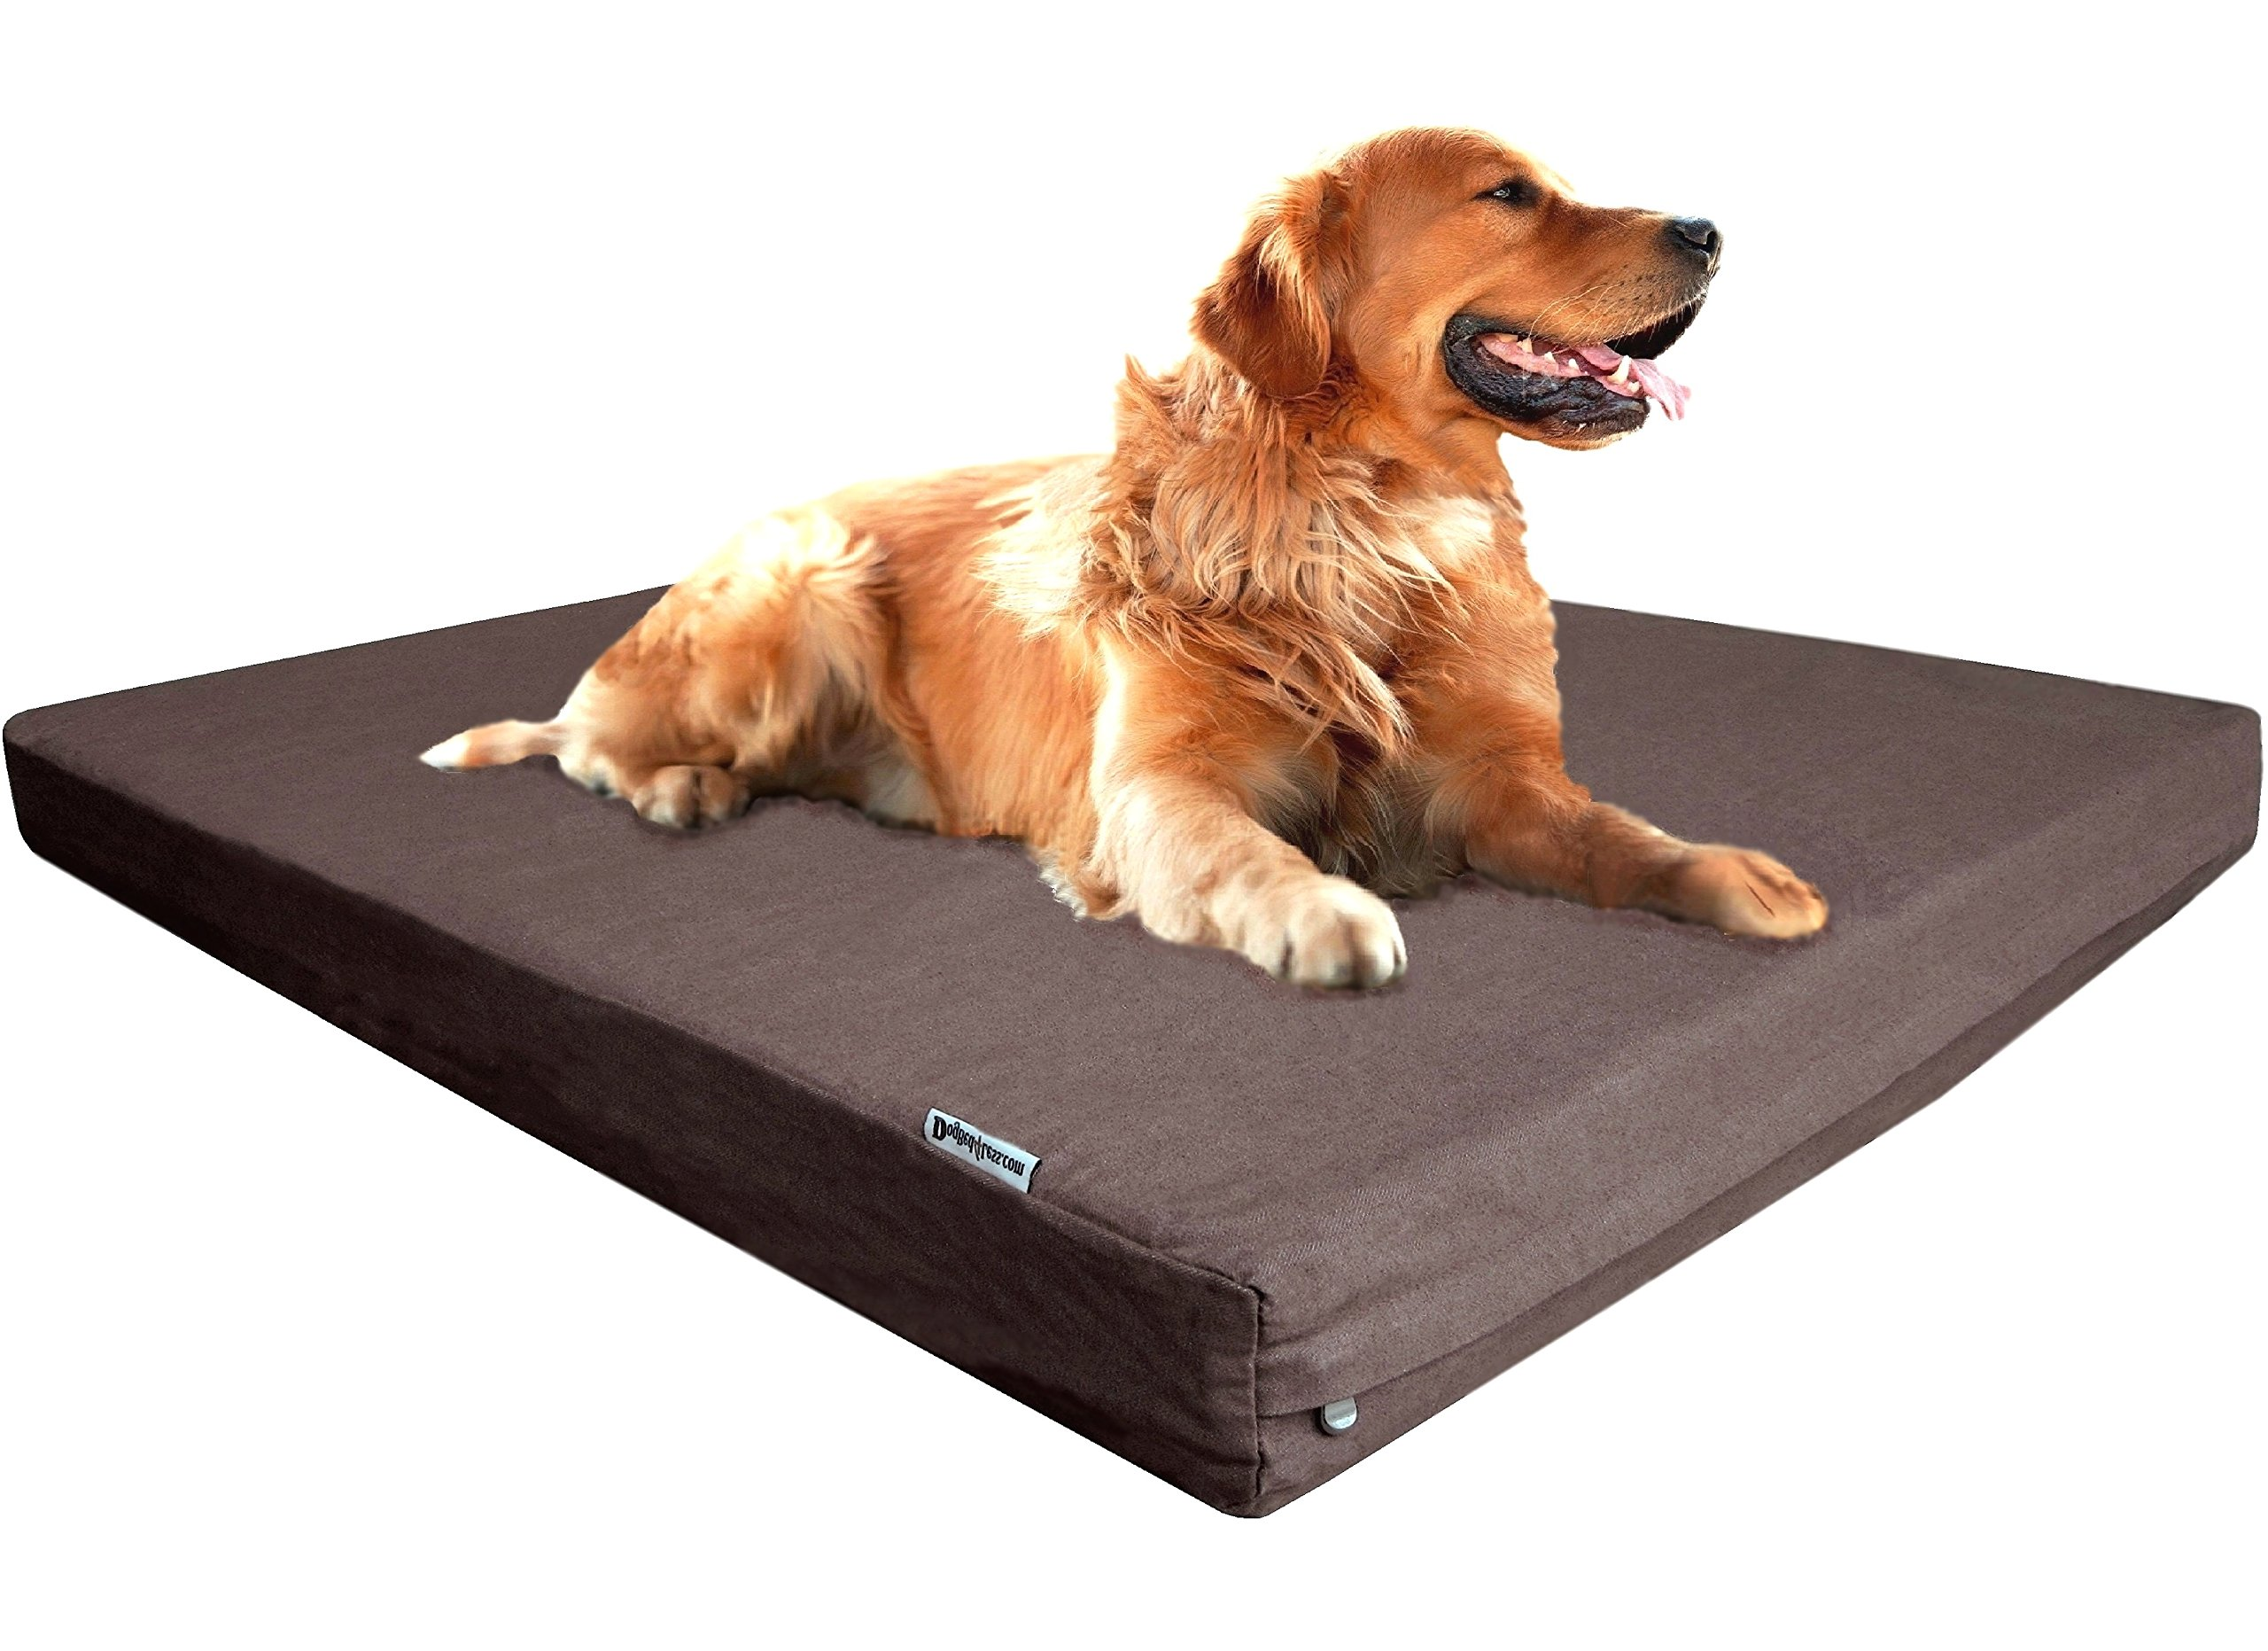 Dogbed4less Orthopedic Gel Infused Memory Foam Dog Bed for Medium to Large Pet, Waterproof Liner and Denim Brown Cover, 47X29X4 Inches